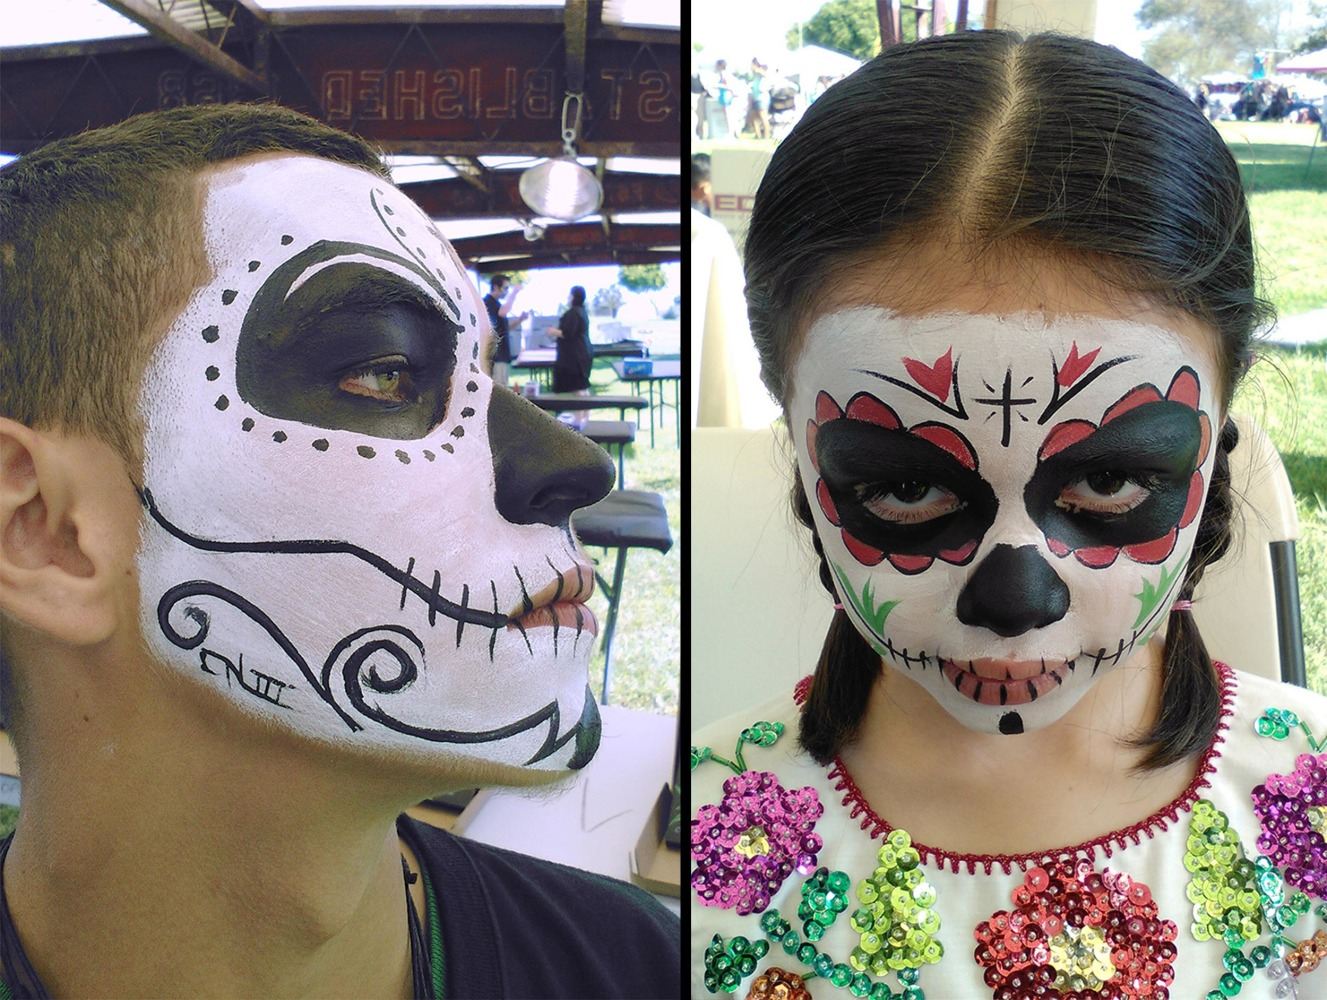 authors artists chefs share dia de los muertos celebrations image face painting by artist carlos nieto for dia de los muertos celebrations